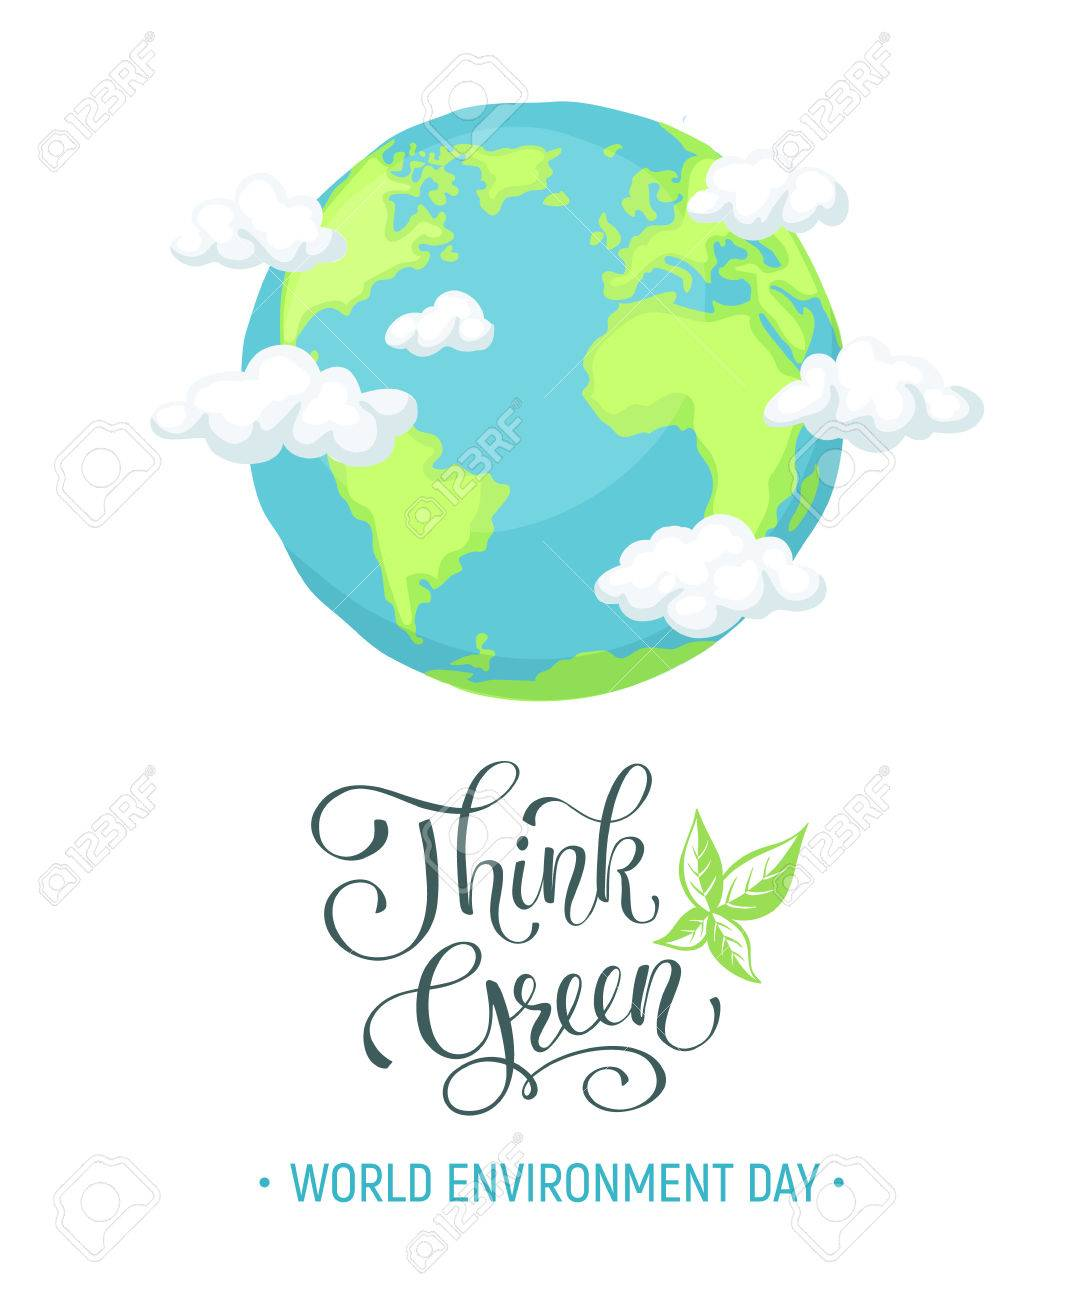 Creative Poster On Earth Day With Slogan